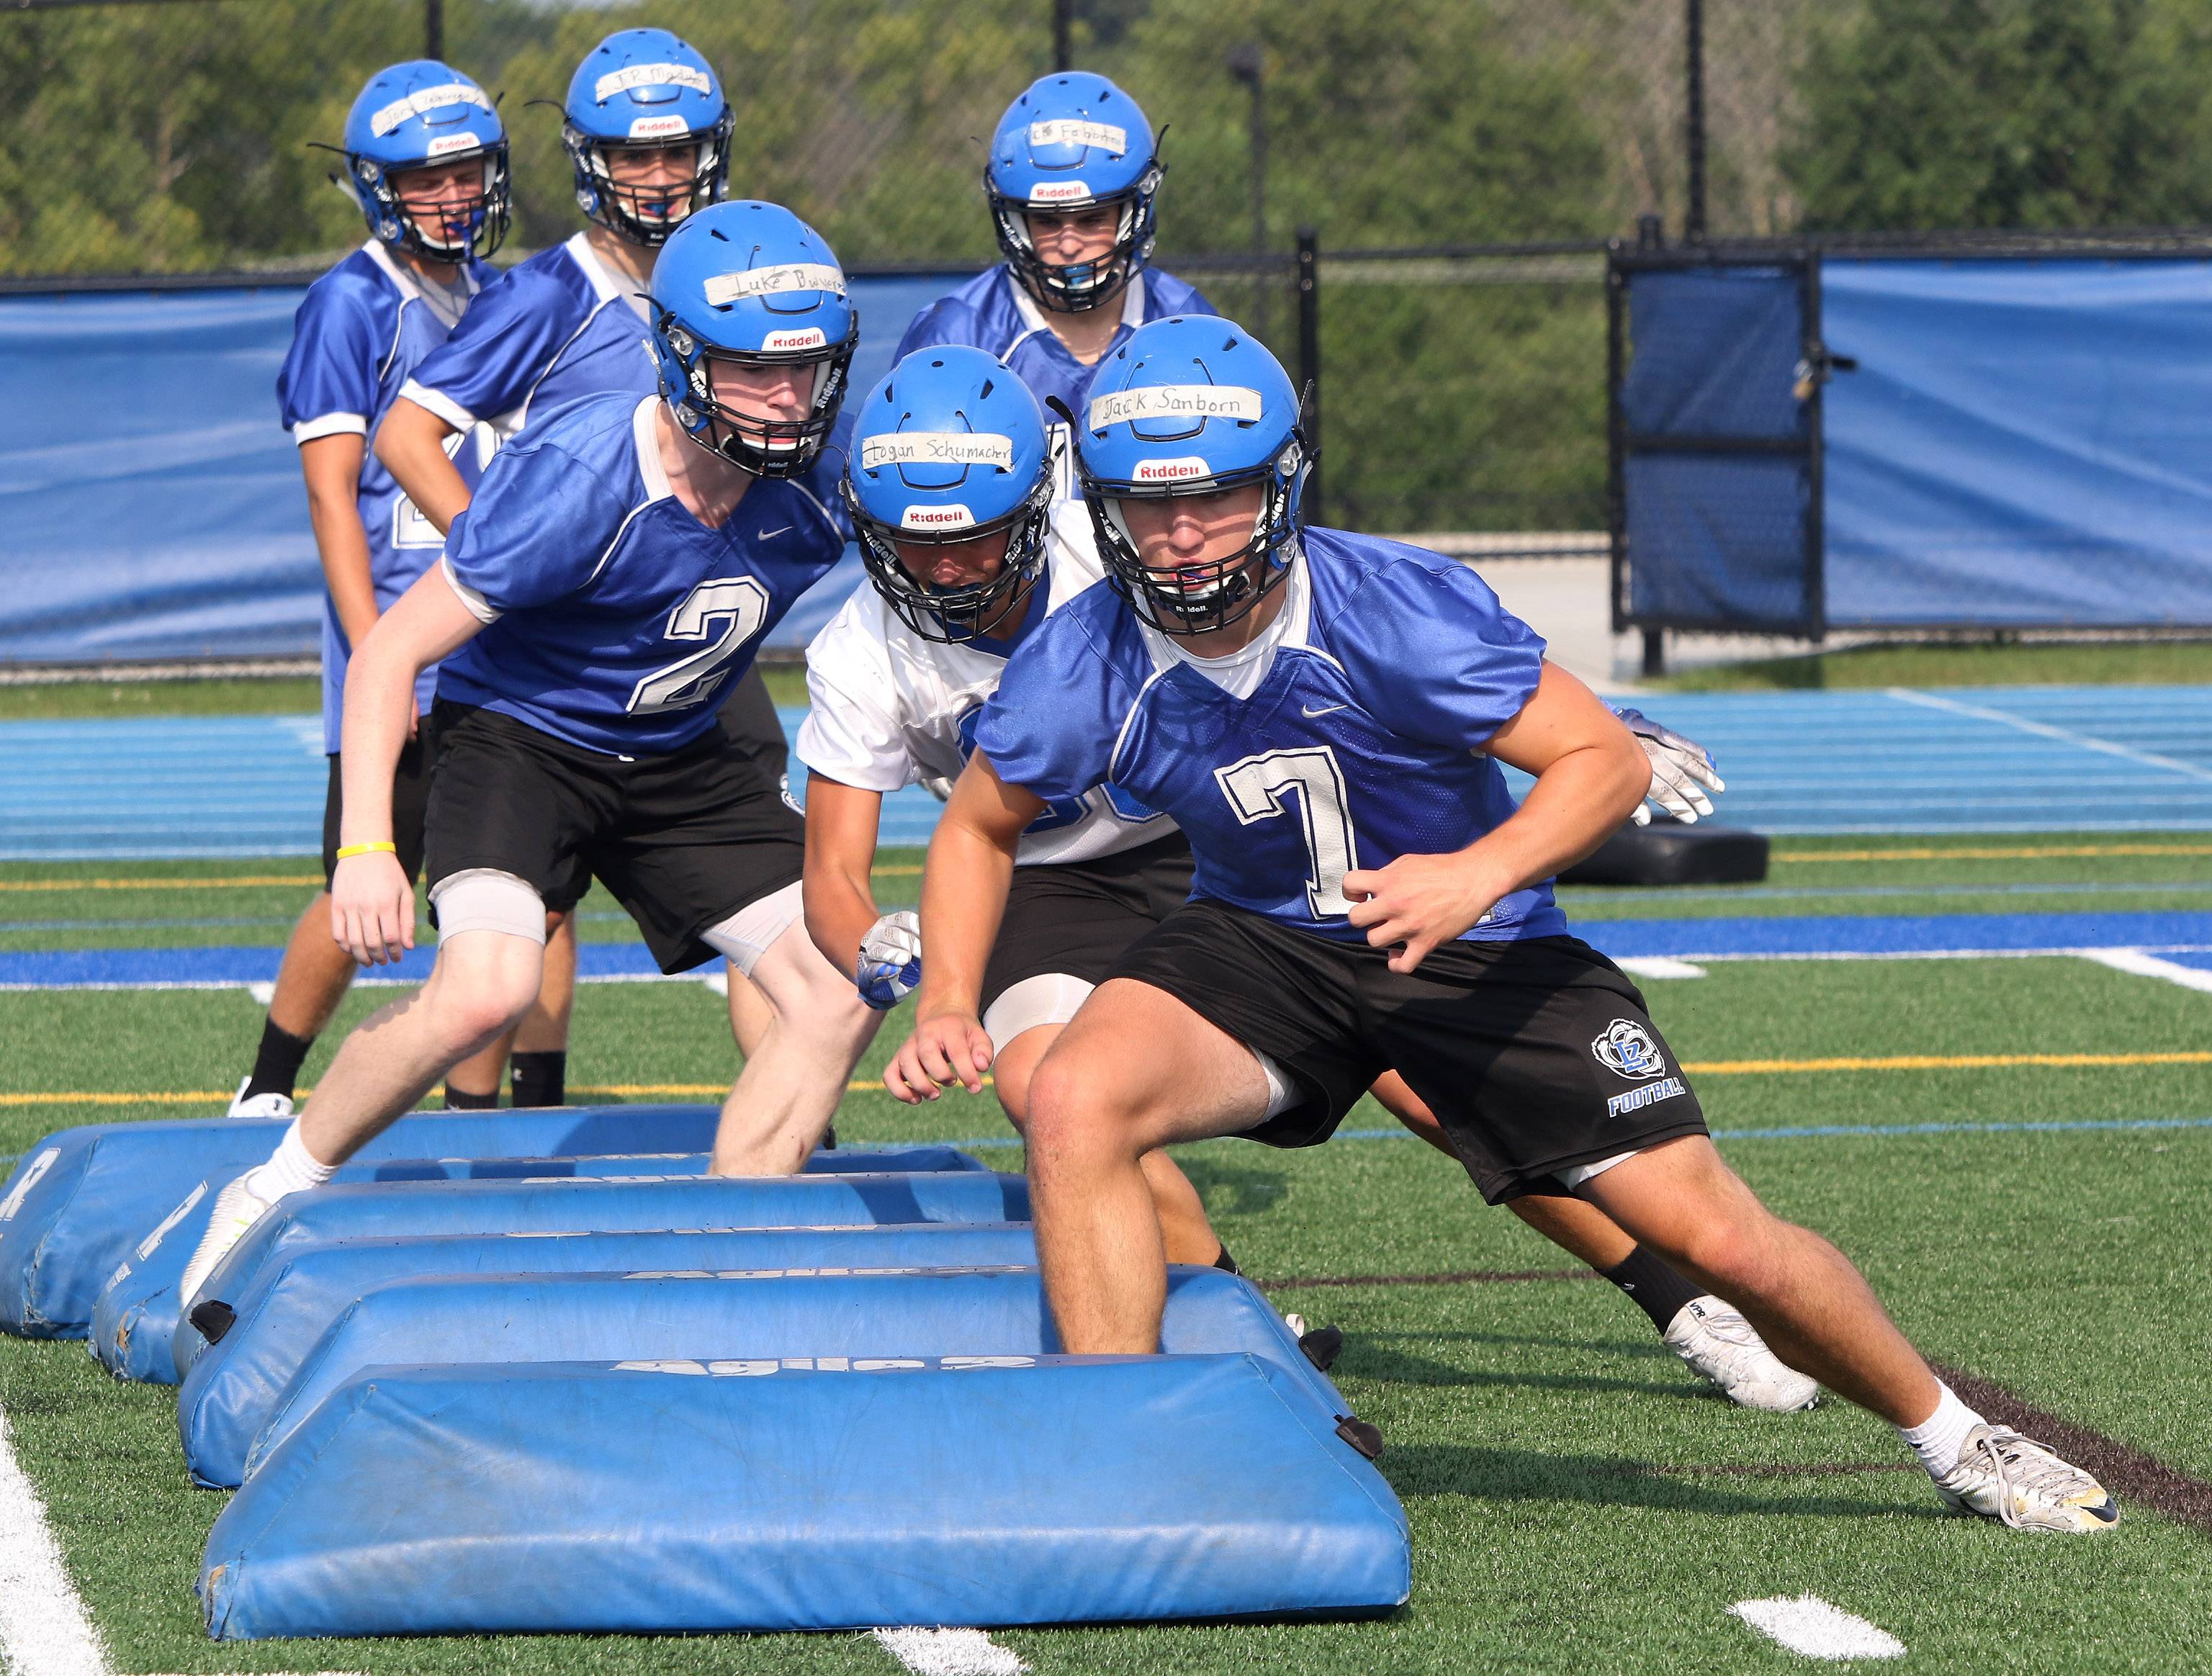 Wisconsin-bound linebacker Jack Sanborn leads a group of players in running drills during the first day of football practice at Lake Zurich on Monday.